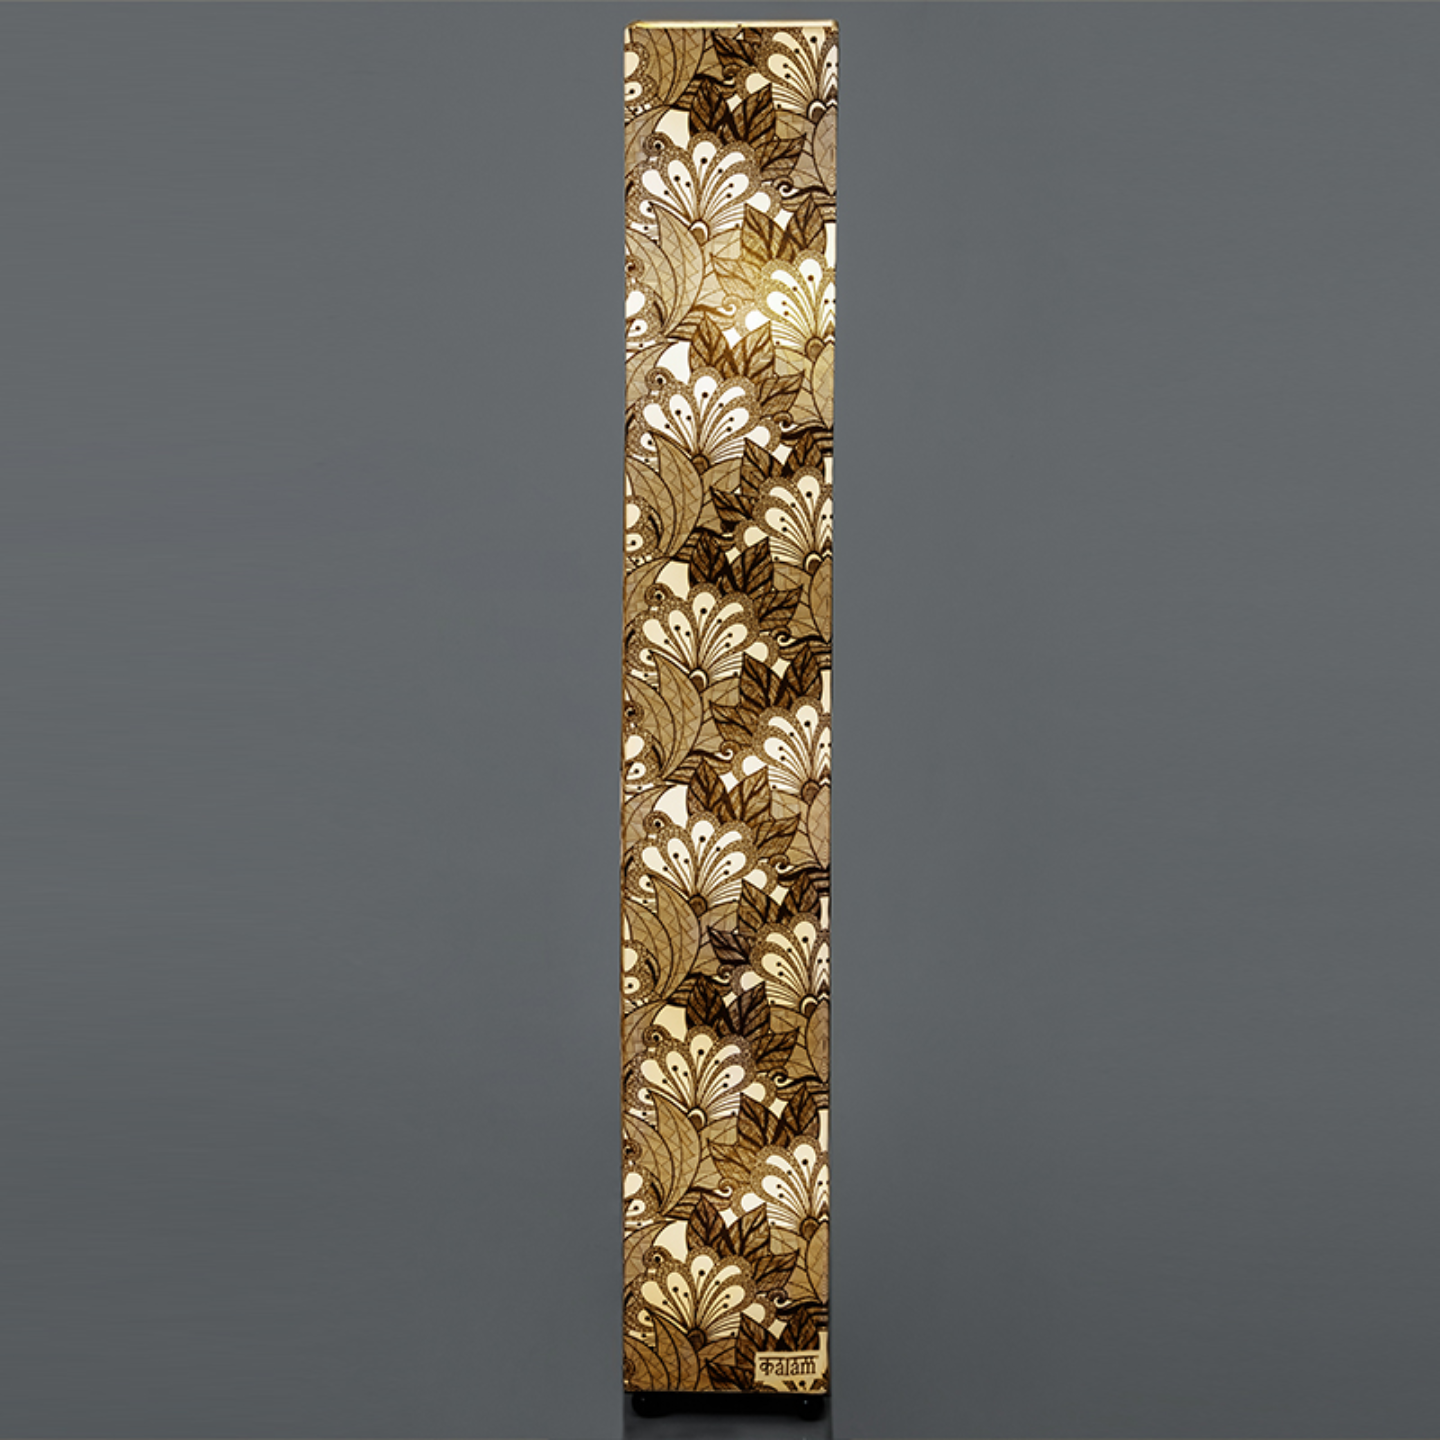 ABSTRACT FLOWER FLOOR LAMP